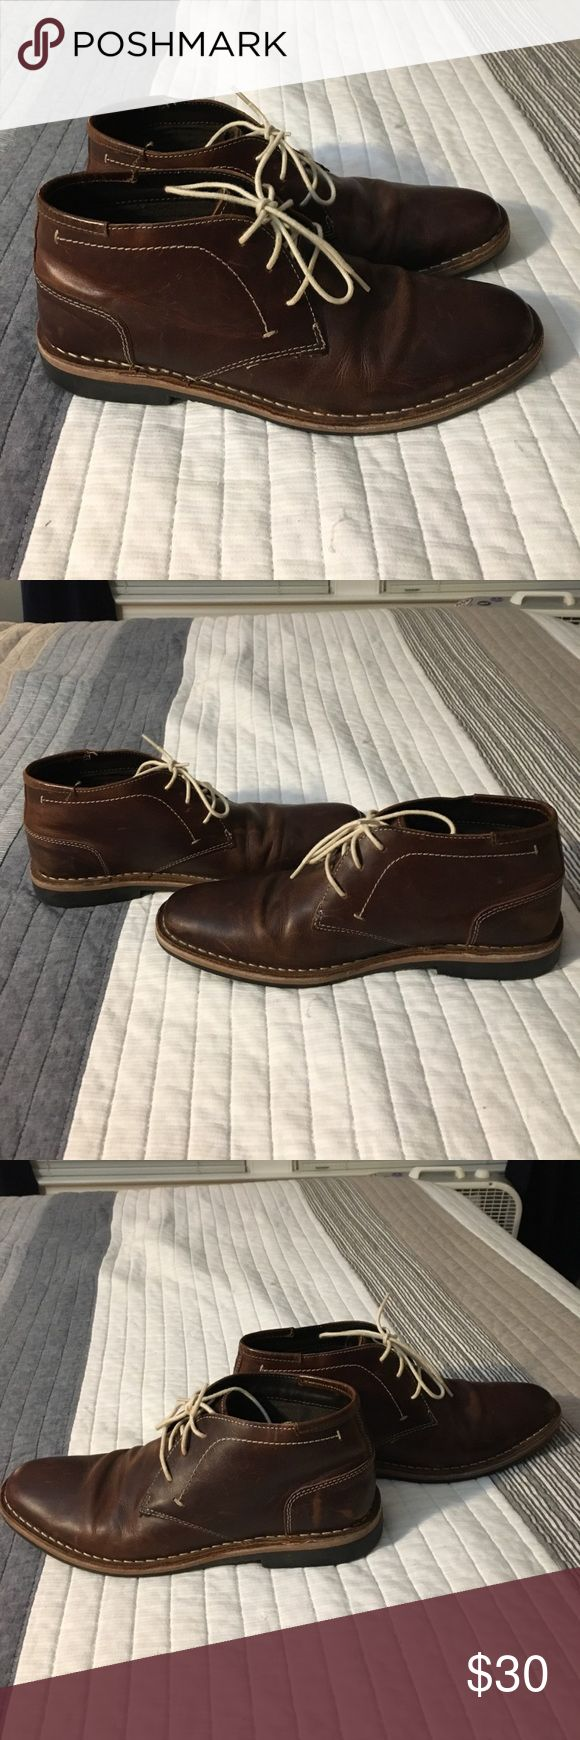 Steve Madden Brown Chukka Boots Great condition. Worn a few times. Very comfortable. Steve Madden Shoes Chukka Boots